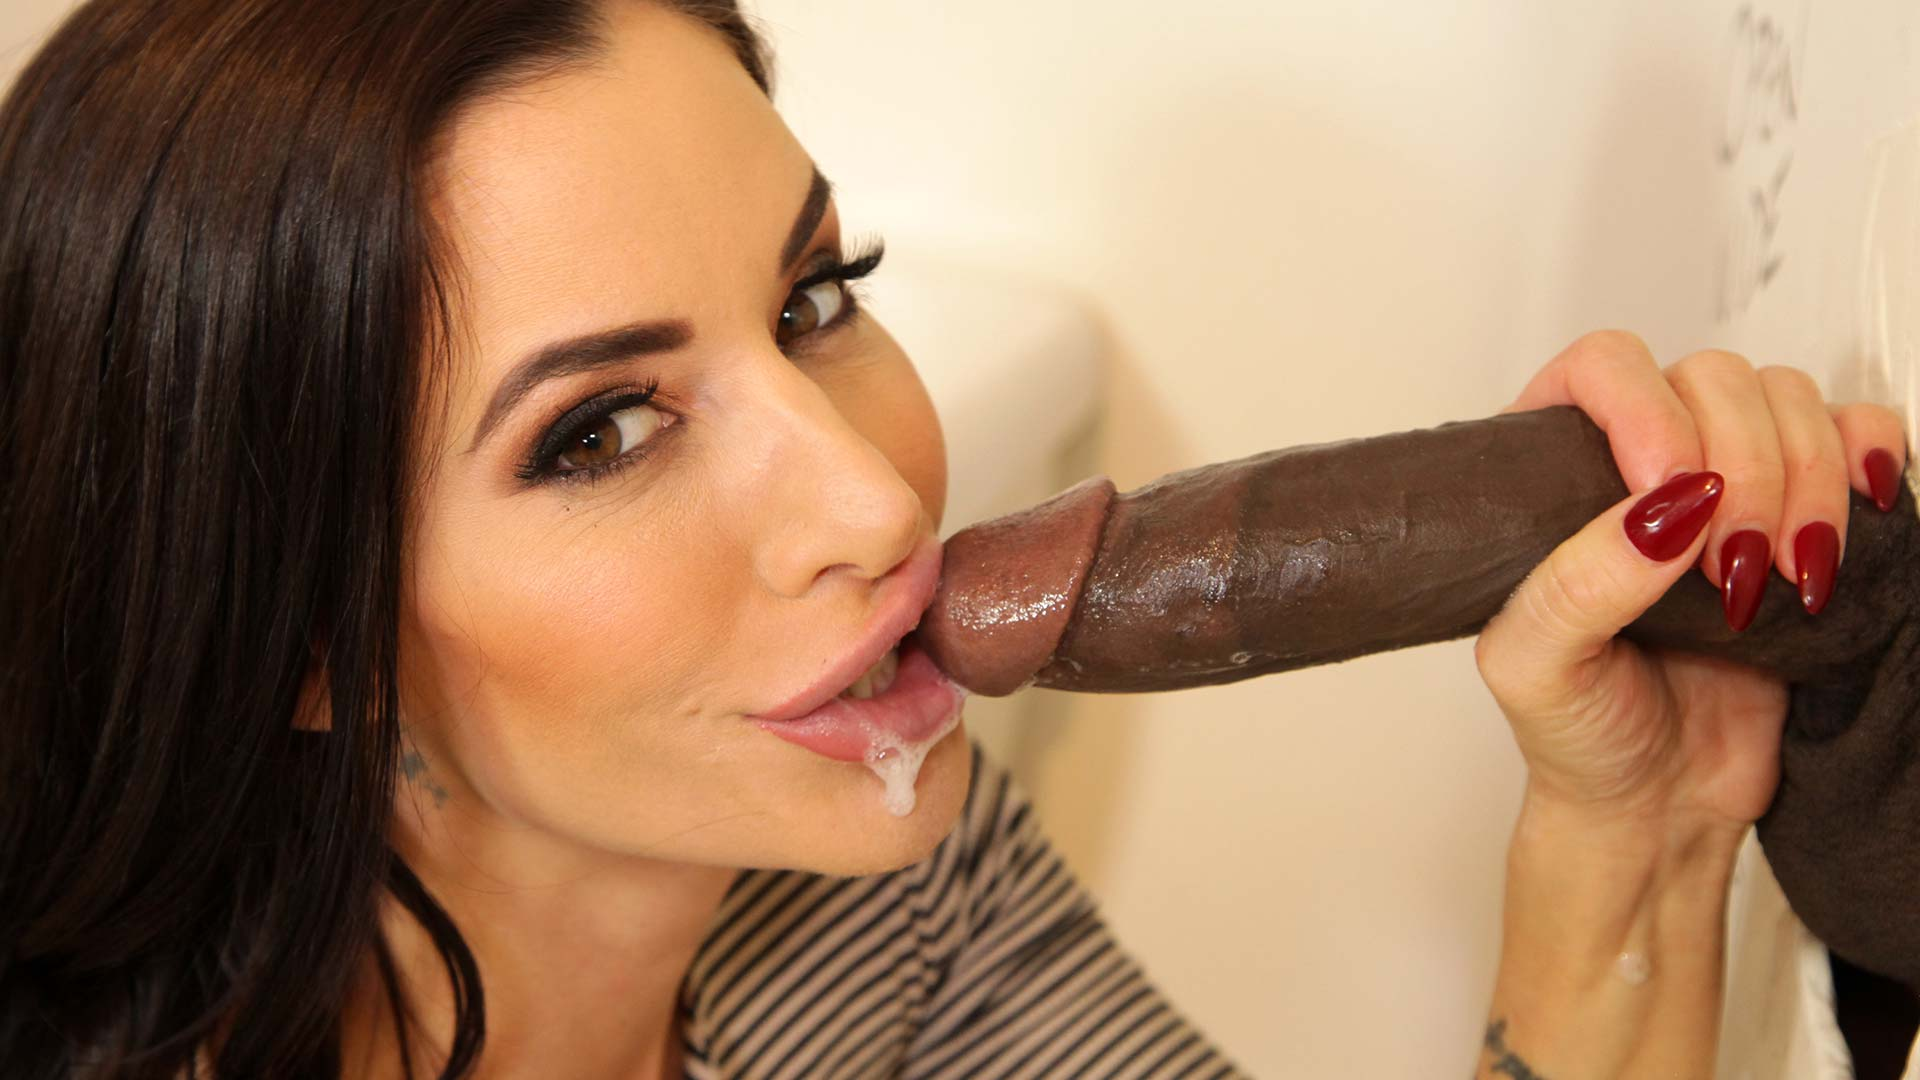 Gloryhole Gia Dimarco Interracial Porn